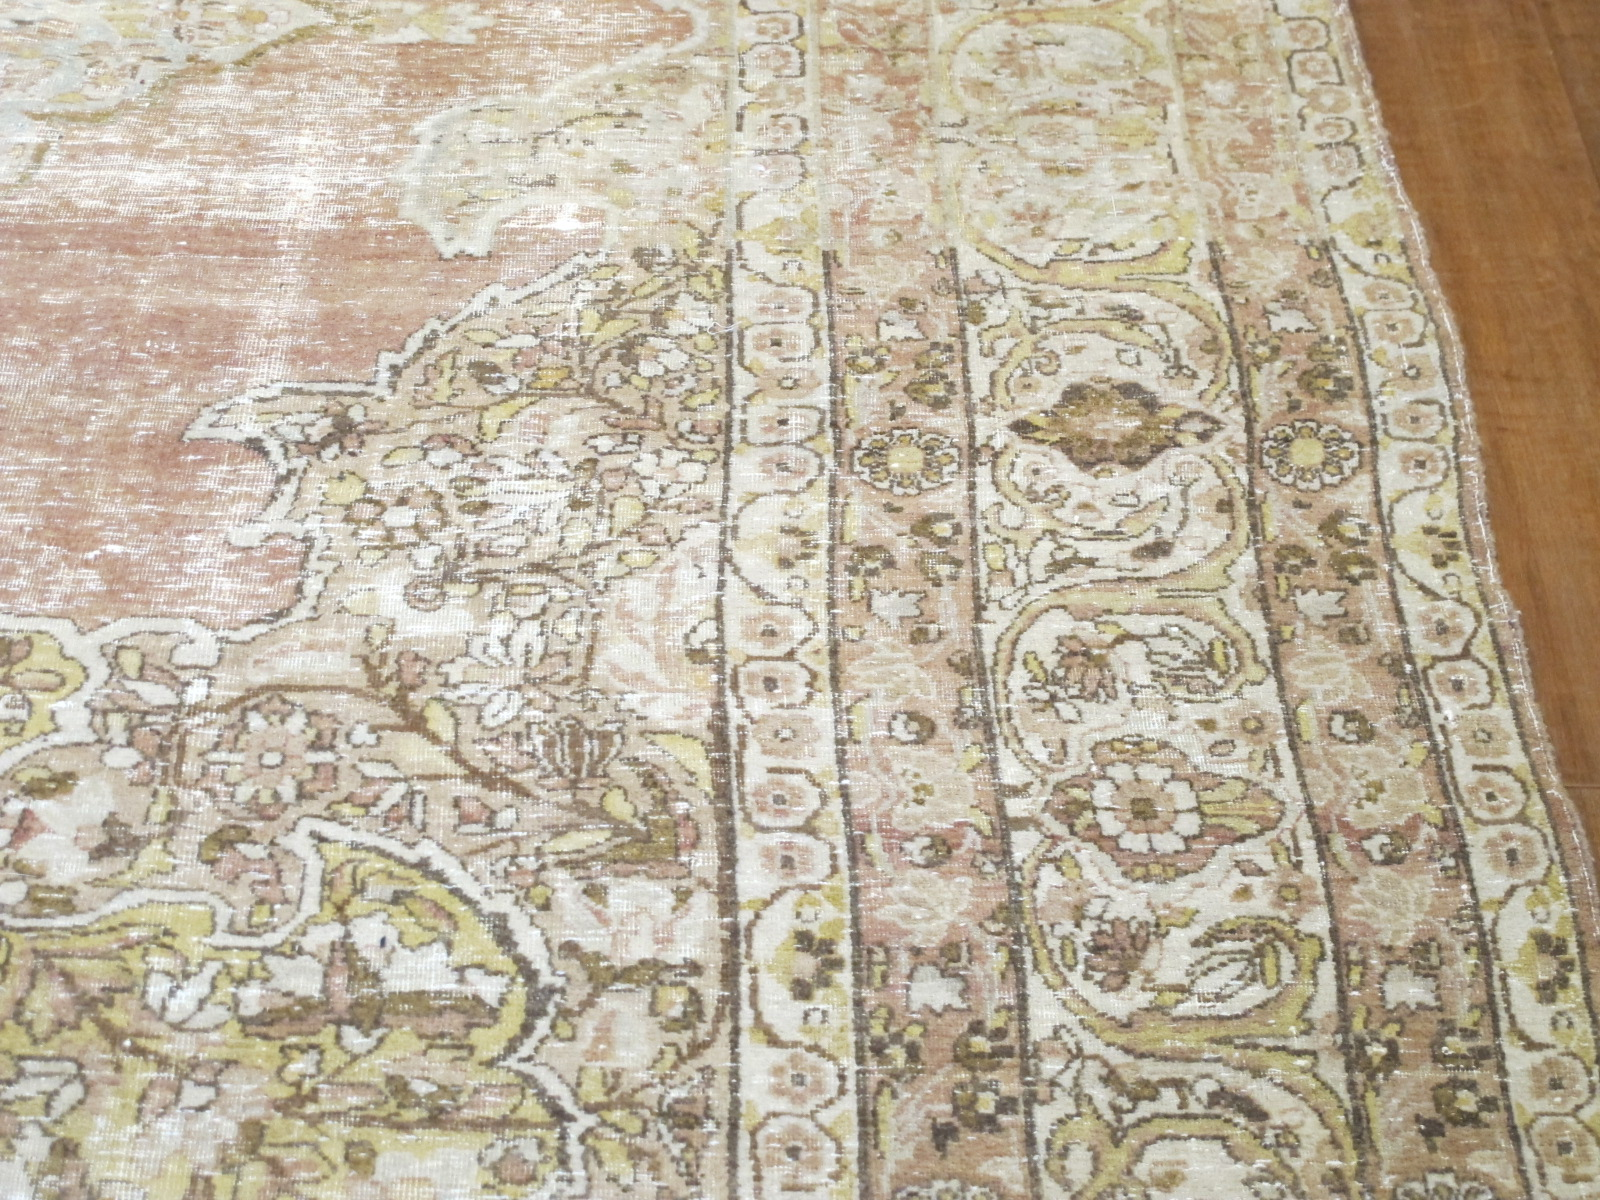 13006 Antique Persian Kerman Lavar carpet 9,9x12,5 (3)